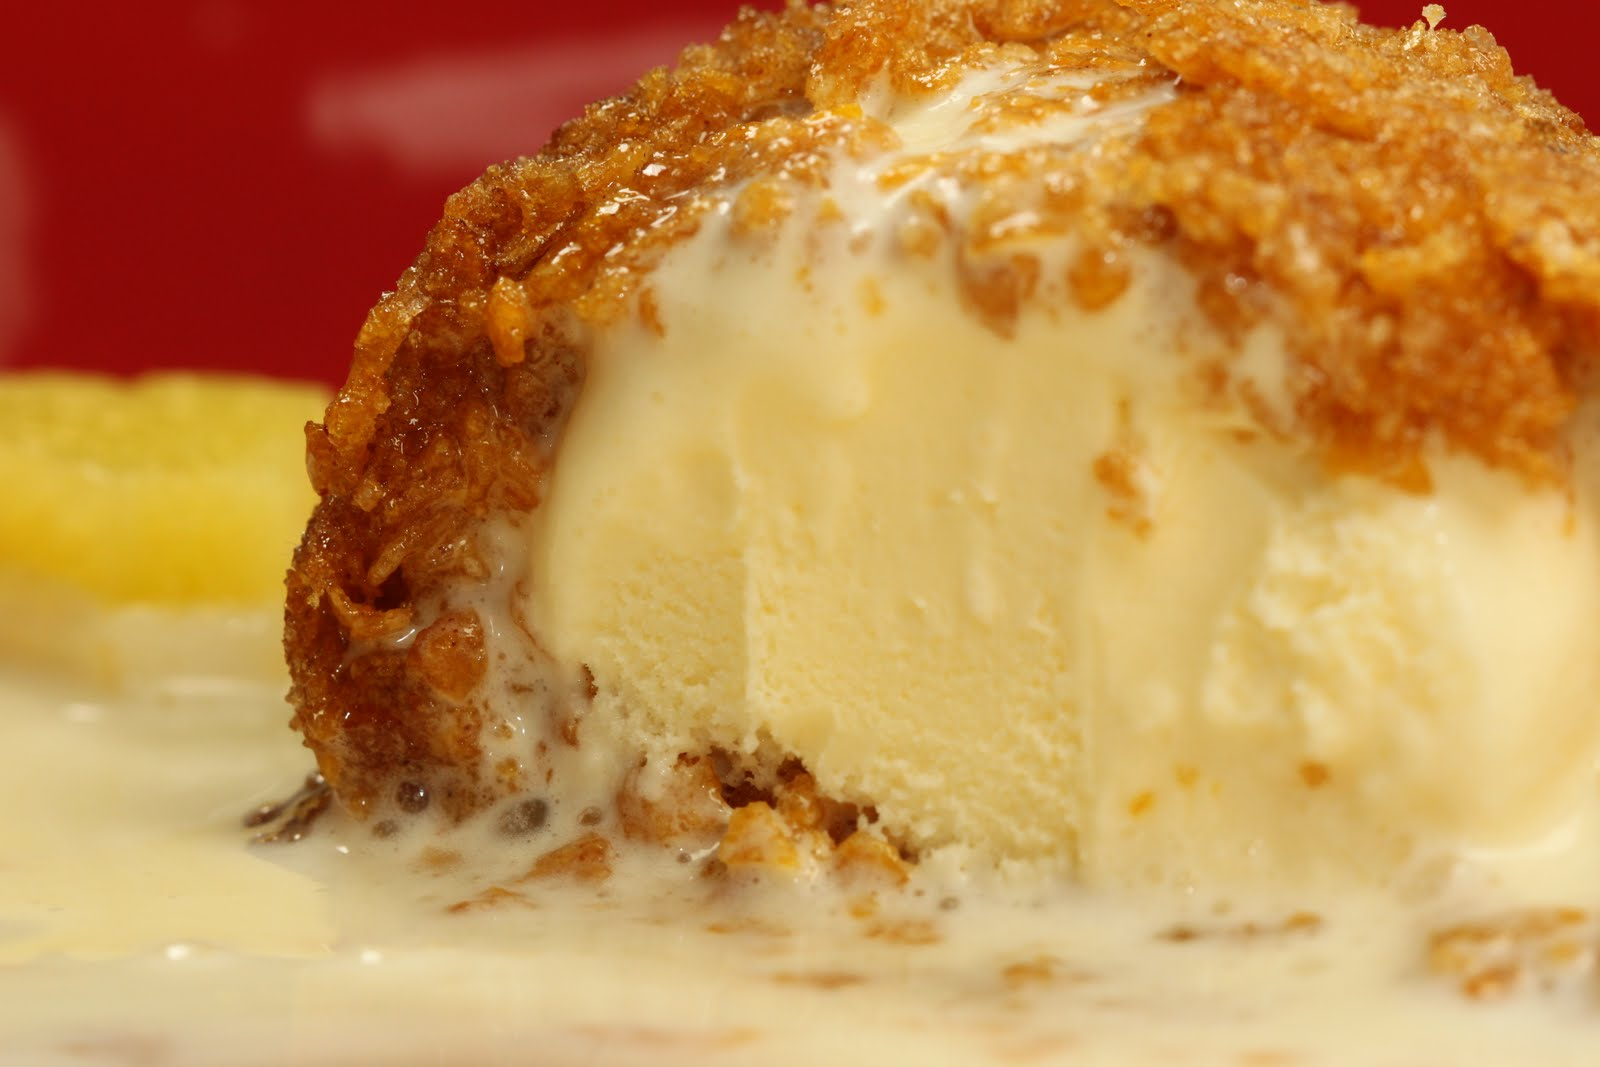 Baking is my Zen: Fried Ice Cream with Pina Colada Cream Sauce